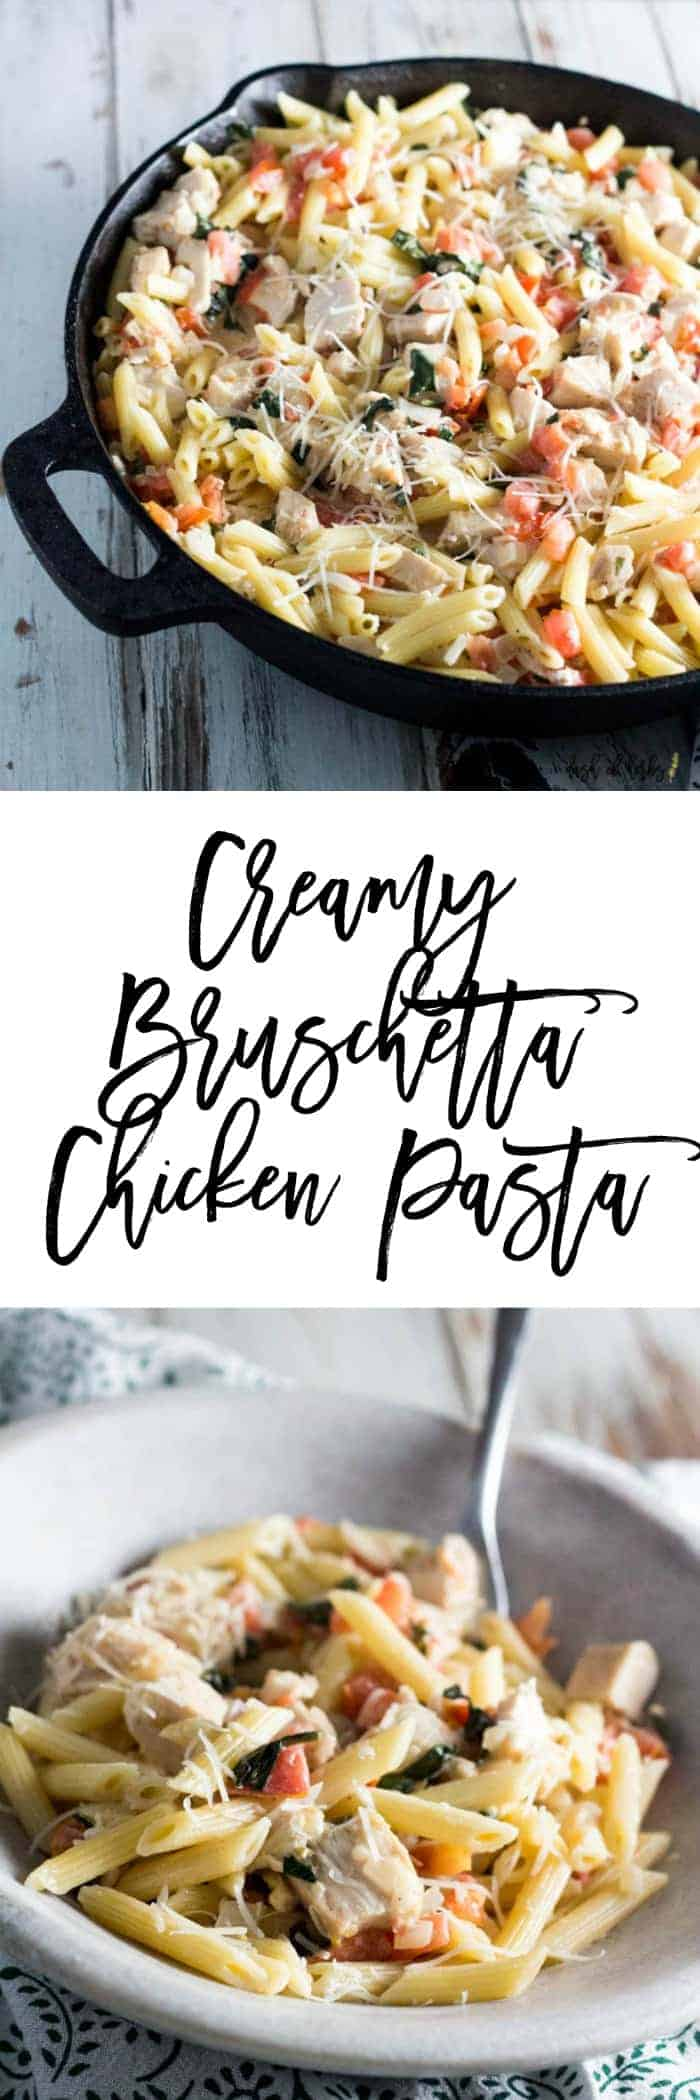 If you crave a creamy pasta dish, you need to try this delicious creamy Bruschetta chicken pasta recipe.  This dish is quick to make and will please your whole family.